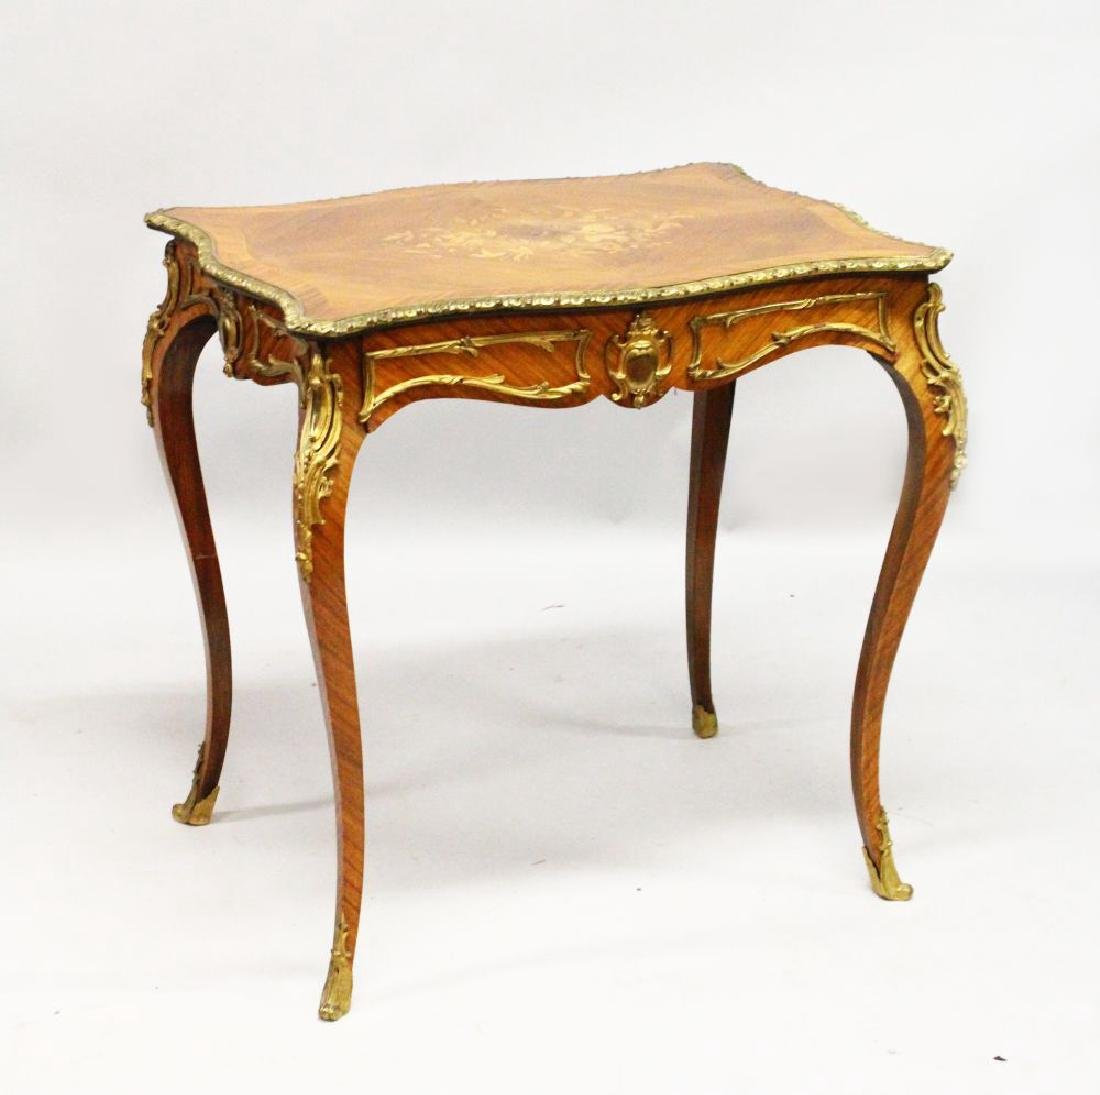 A FRENCH KINGWOOD, ORMOLU AND MARQUETRY SIDE TABLE, the